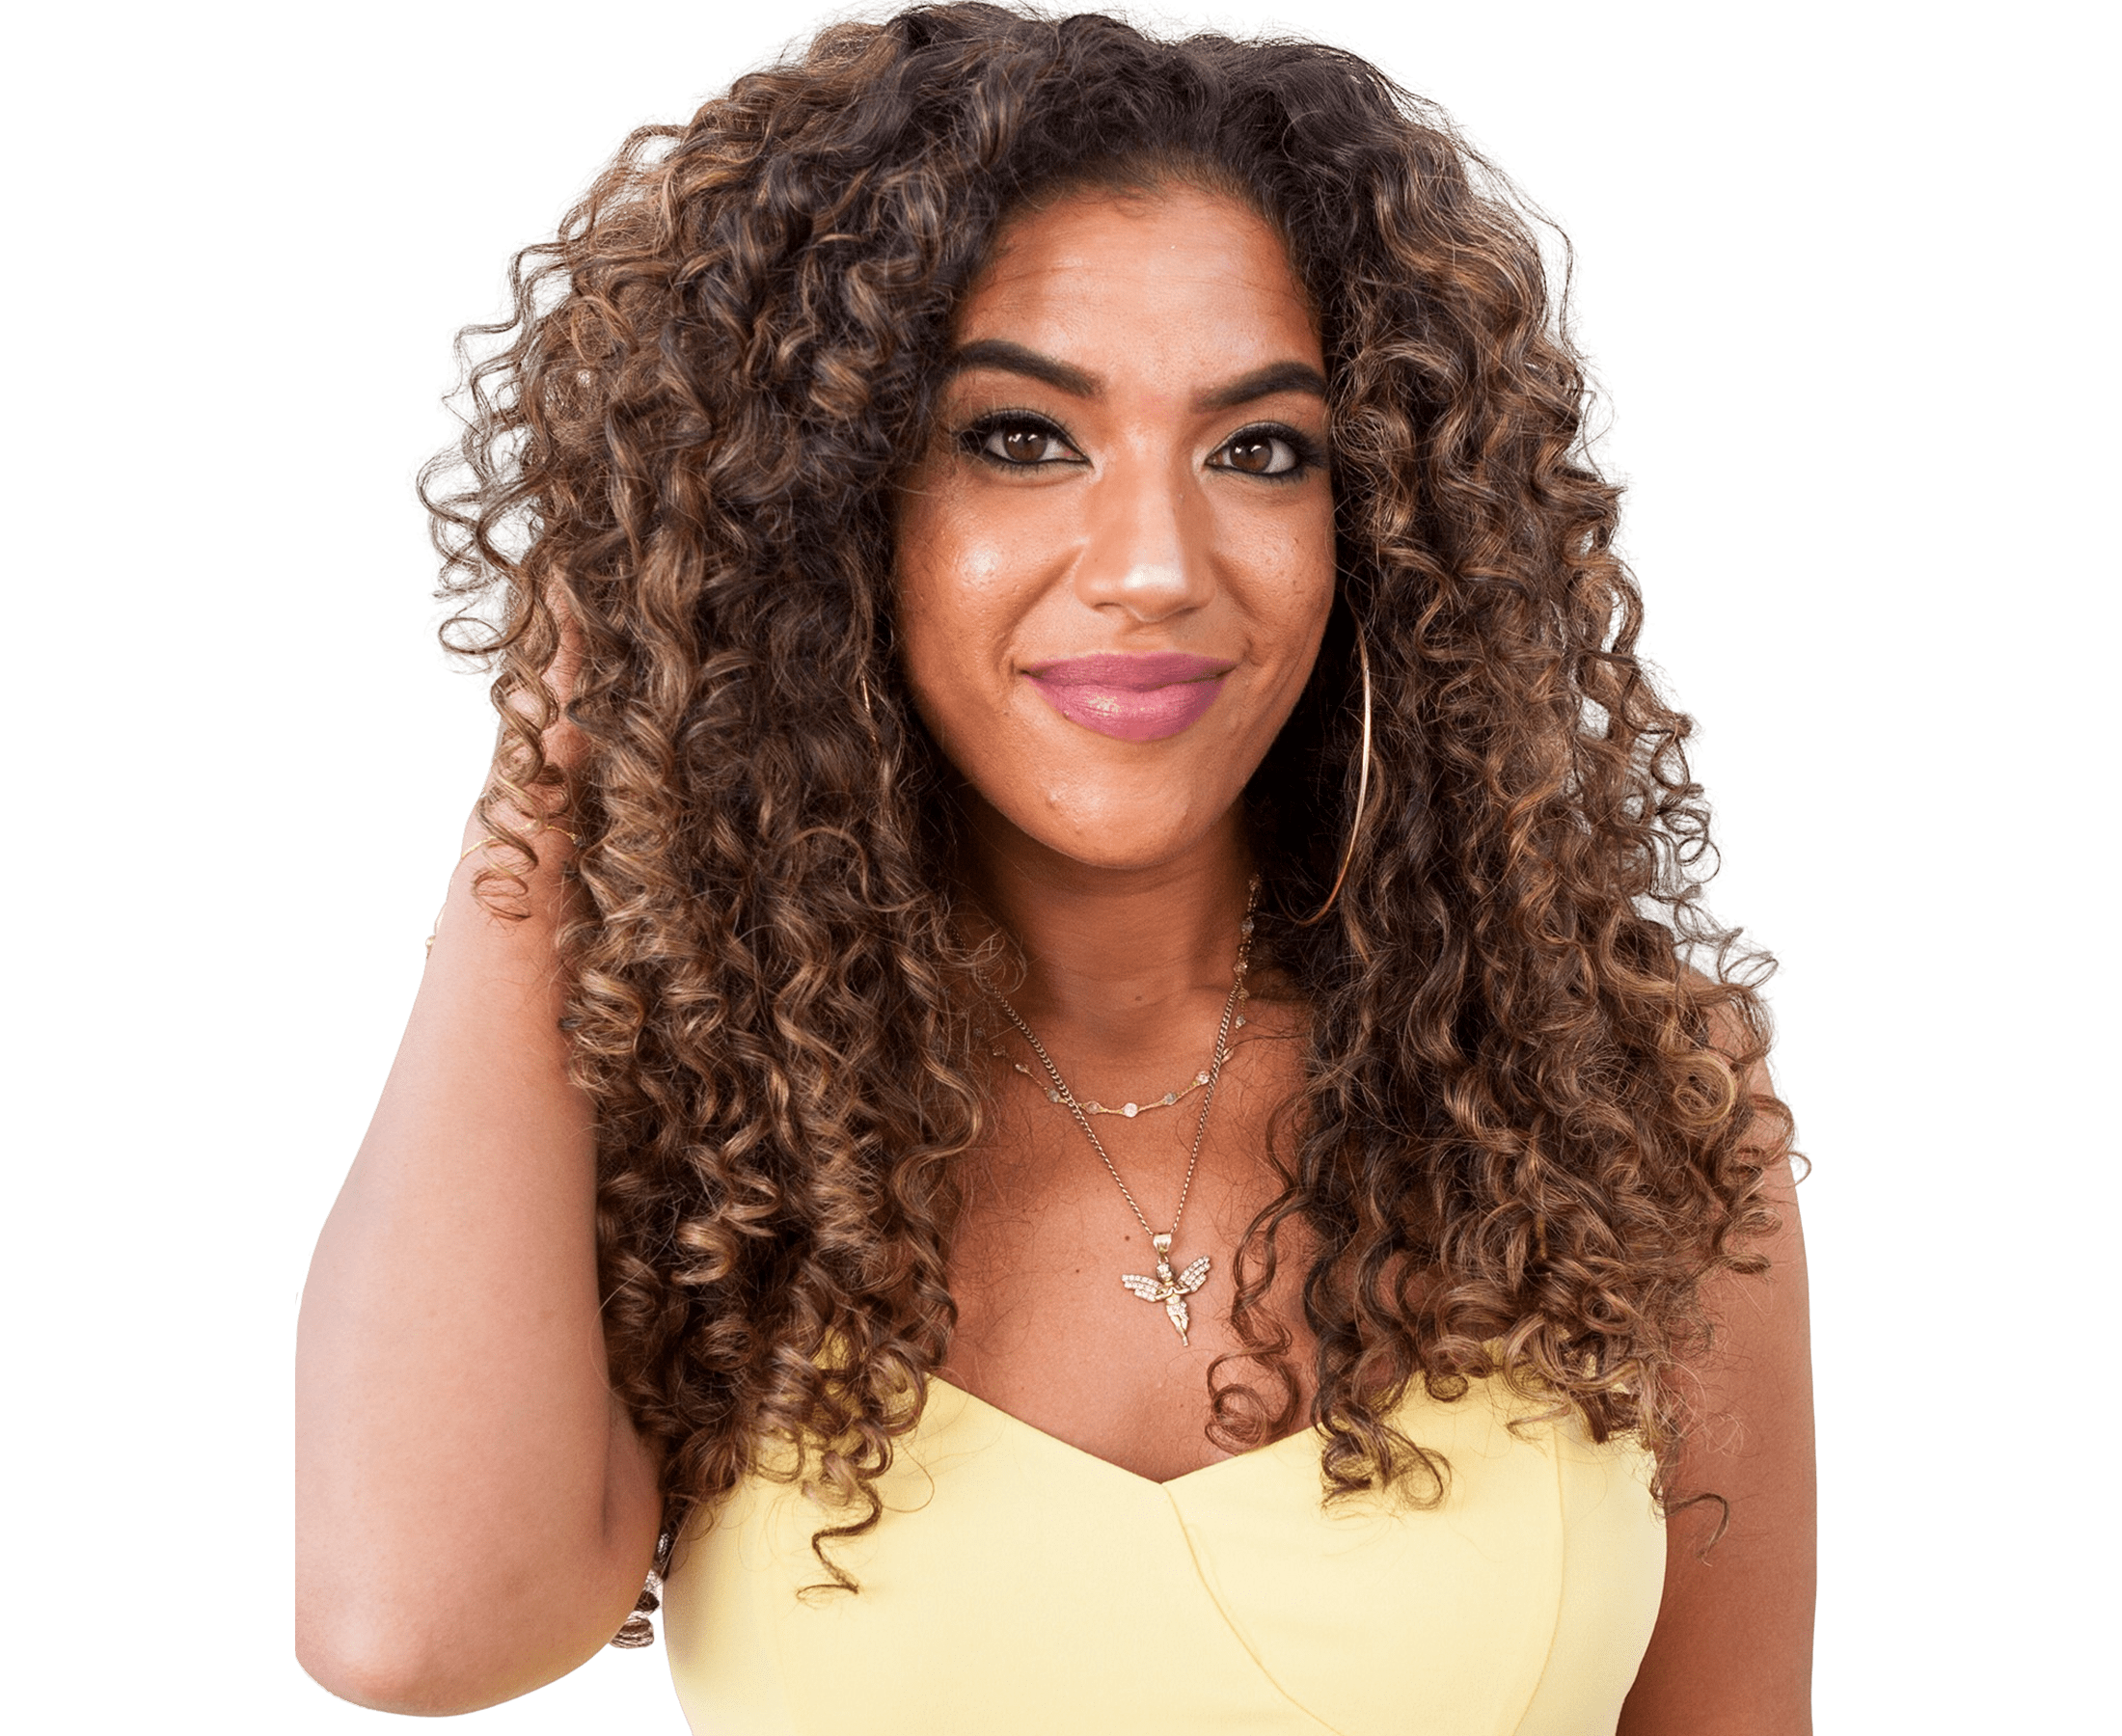 Woman smiling with long curly hair